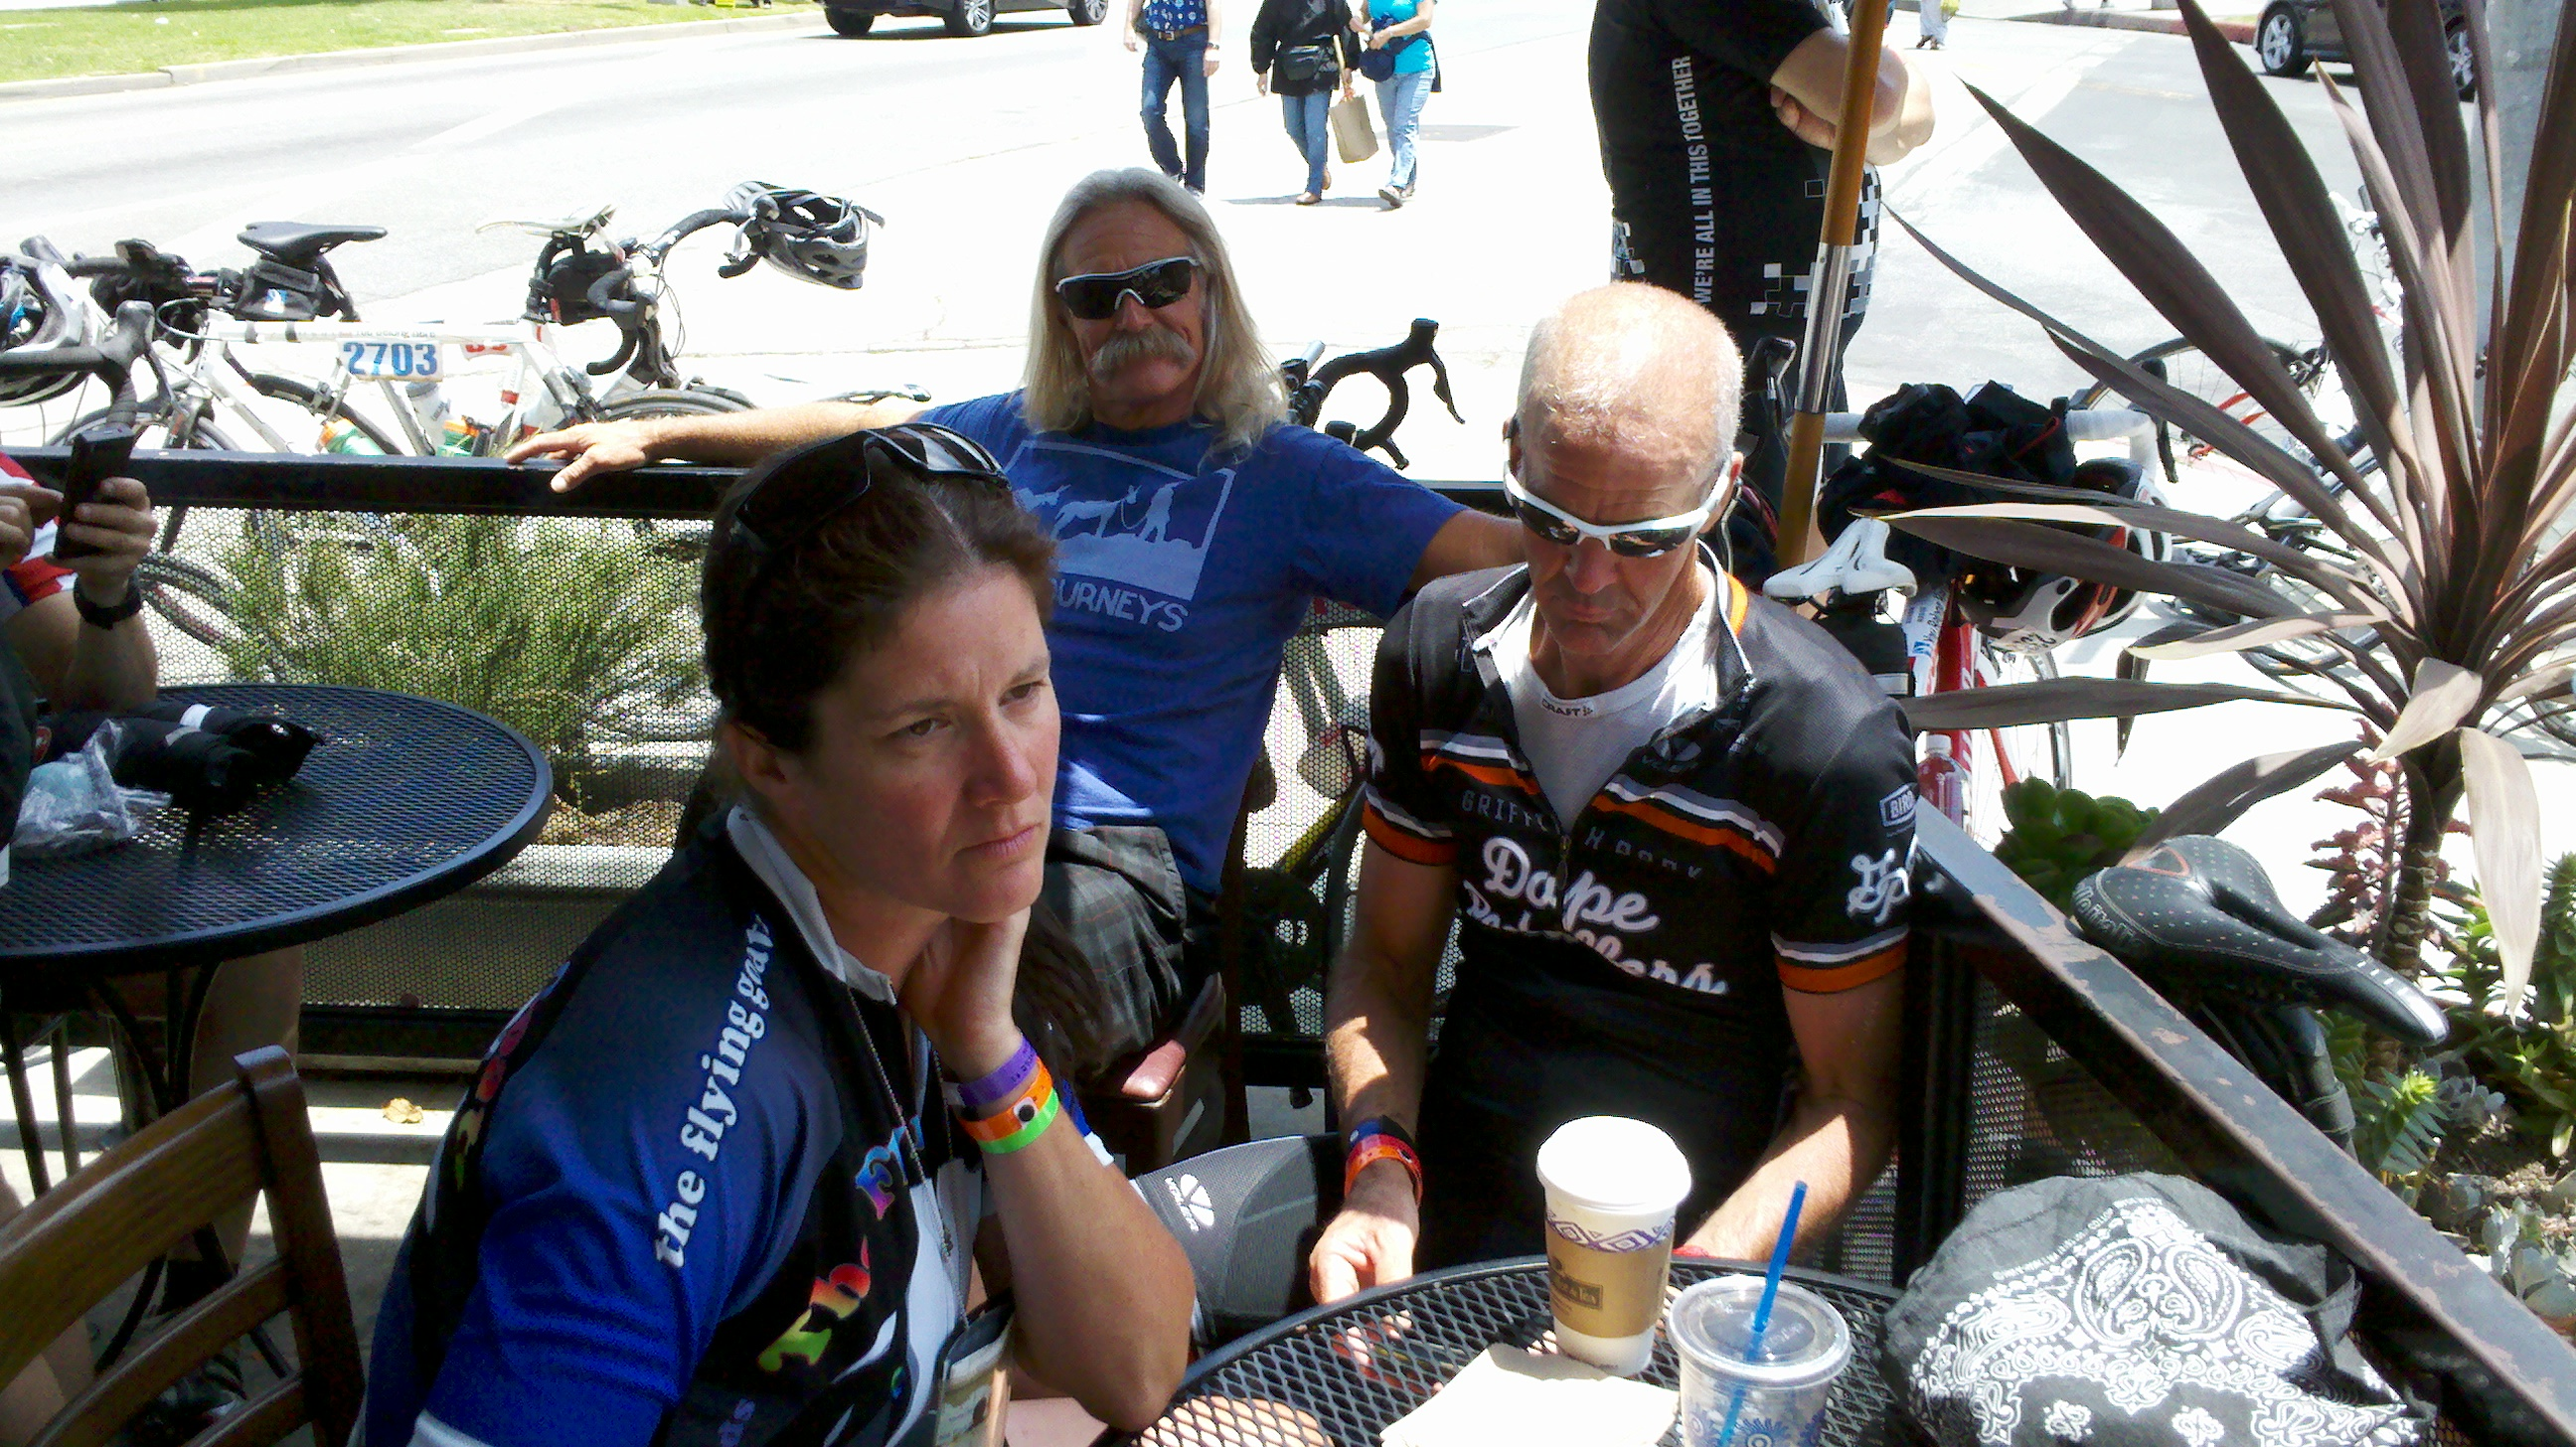 AIDS/Lifecycle Cycling Team at Peet's Coffee